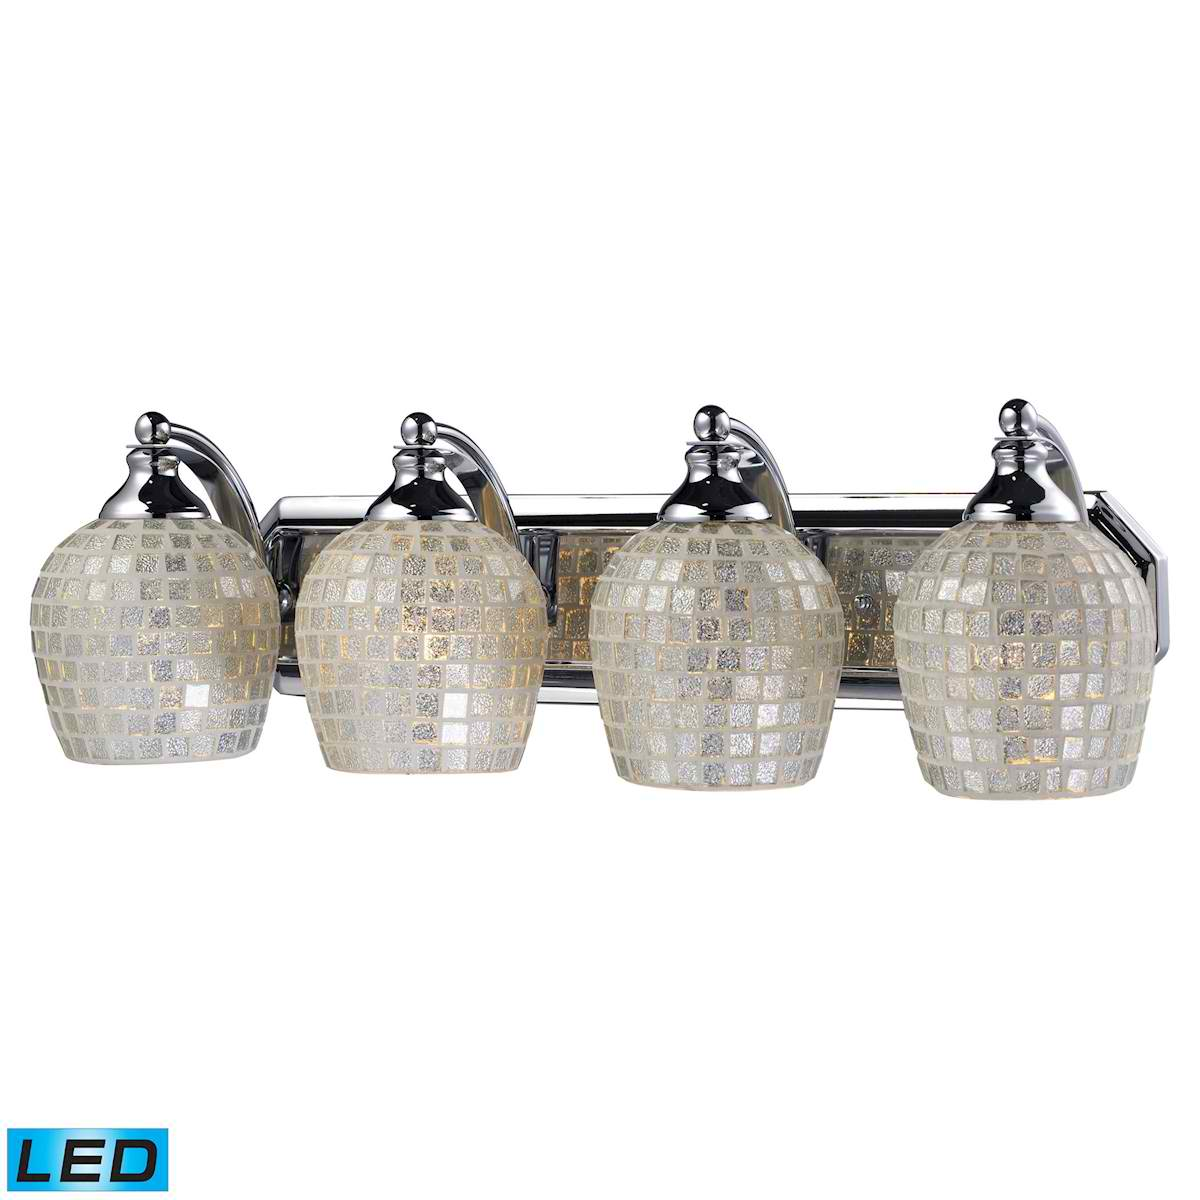 4 Light Vanity in Polished Chrome and Silver Mosaic Glass - LED, 800 Lumens (3200 Lumens Total) With Full Scale